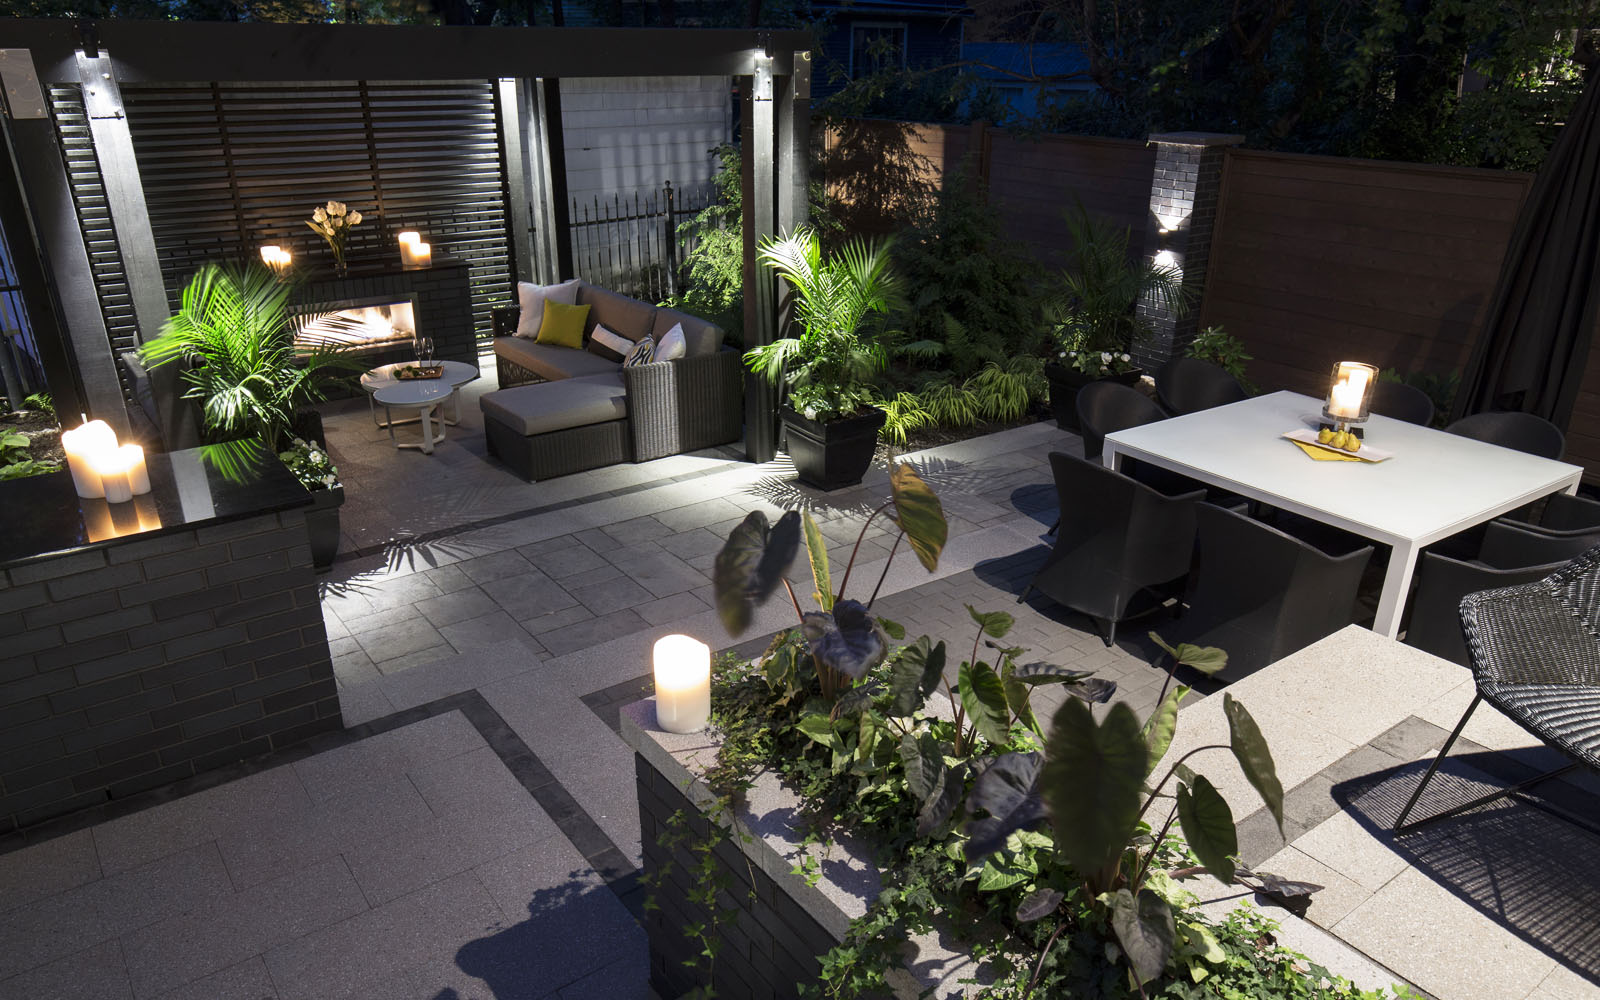 An indoor-outdoor transition that can improve the value of your home